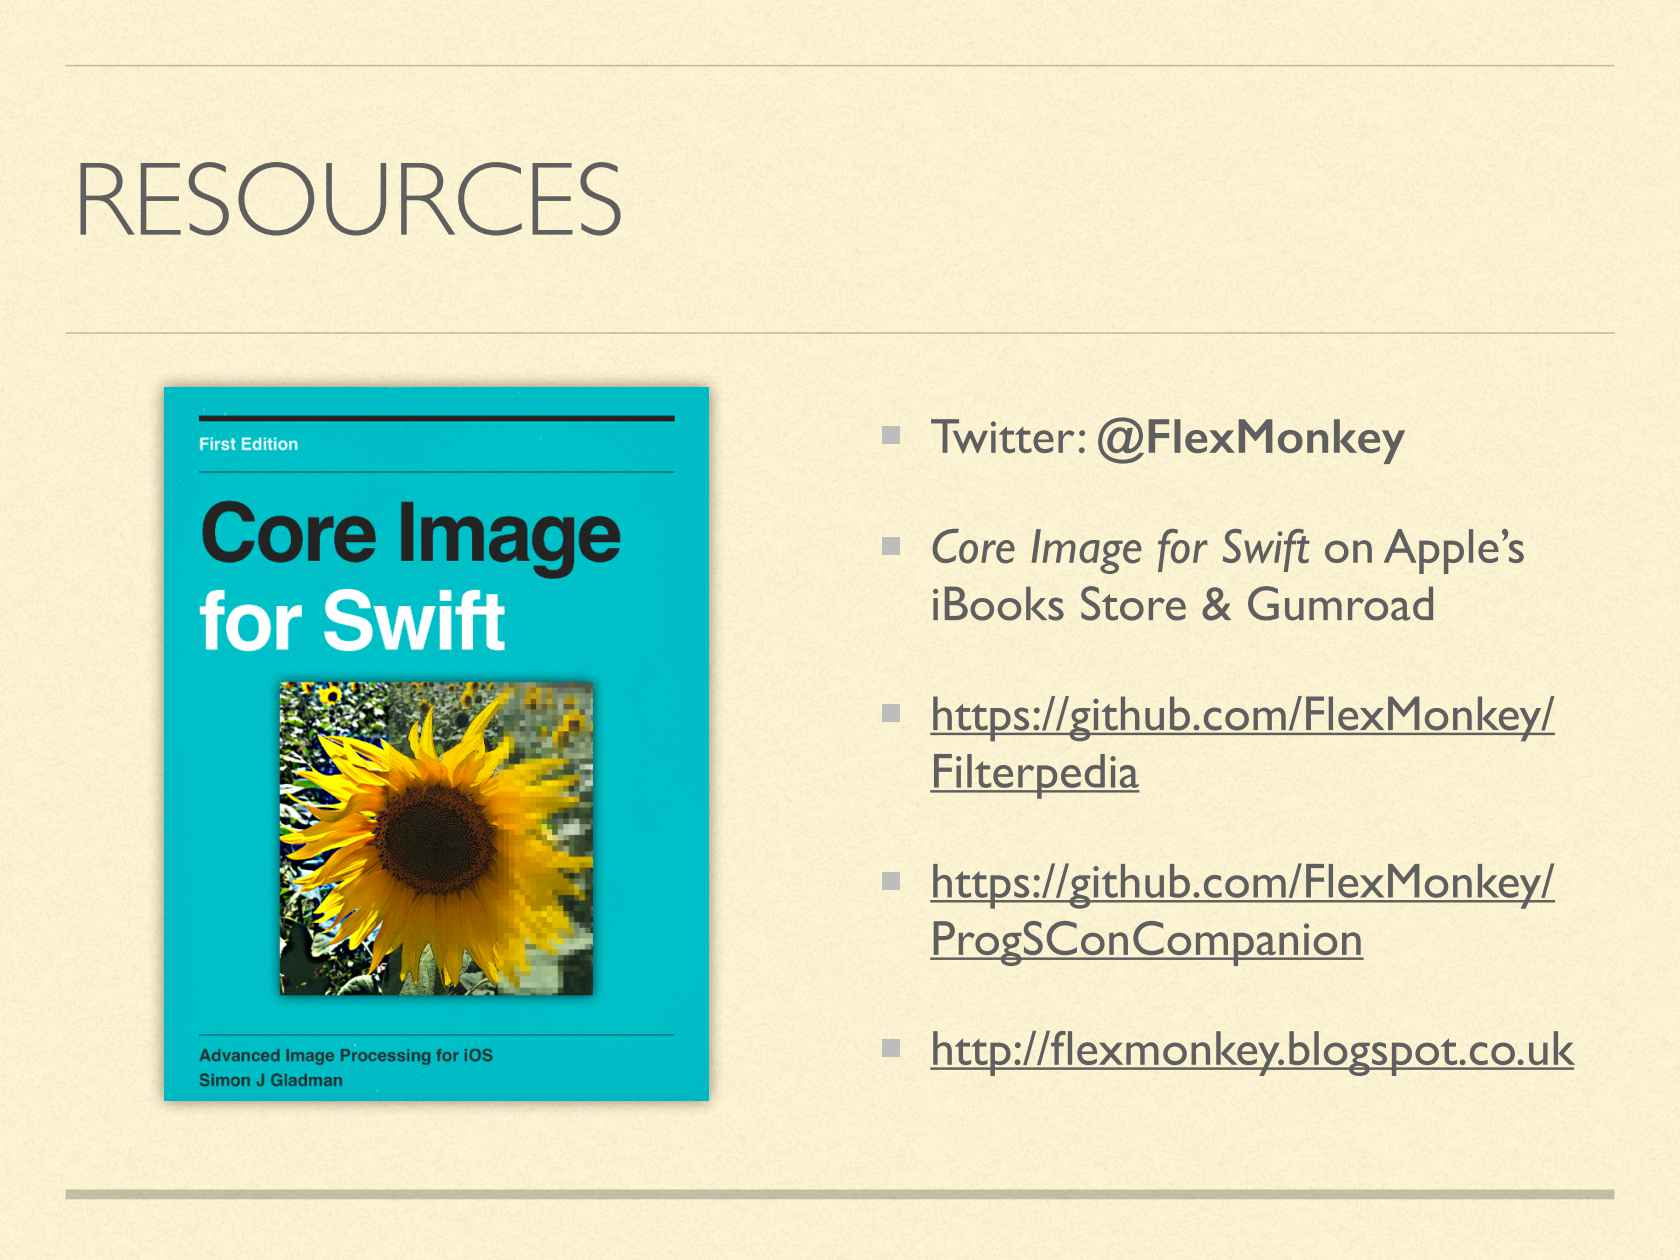 Image Processing for iOS